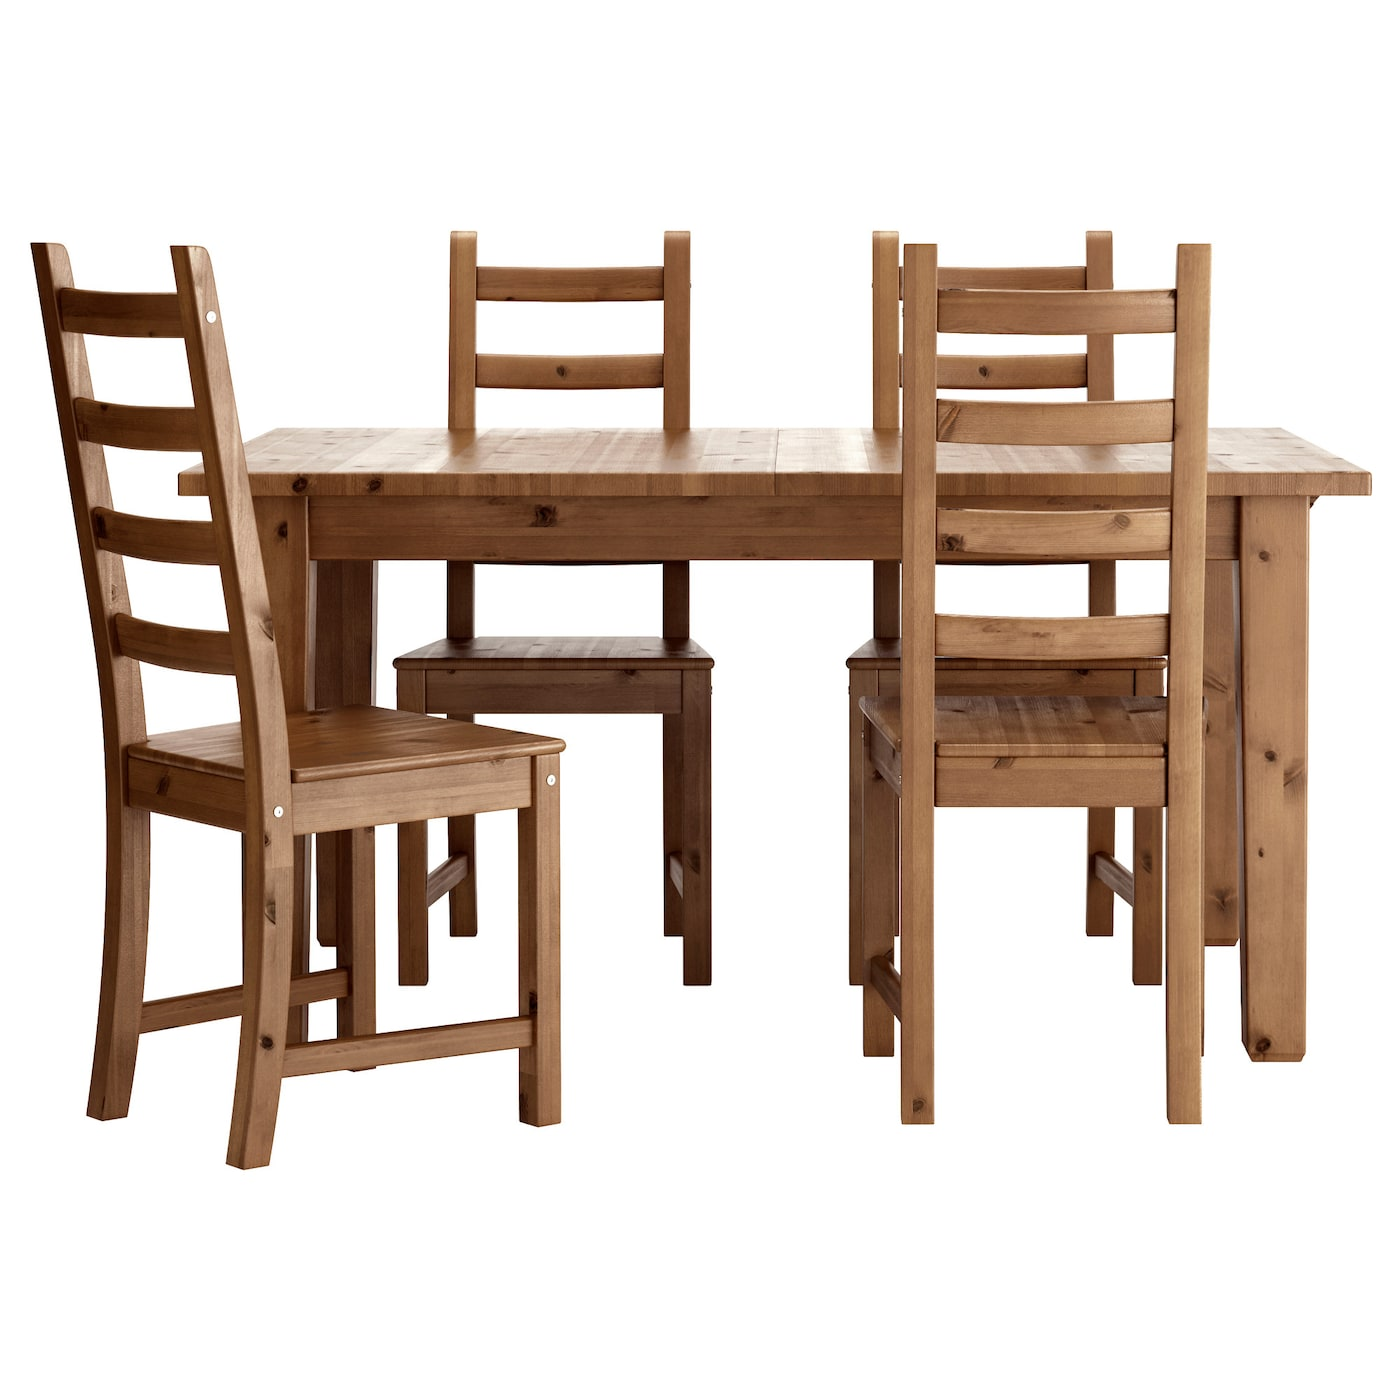 Kaustby storn s table and 4 chairs antique stain 147 cm ikea for Ikea dining table and chairs set